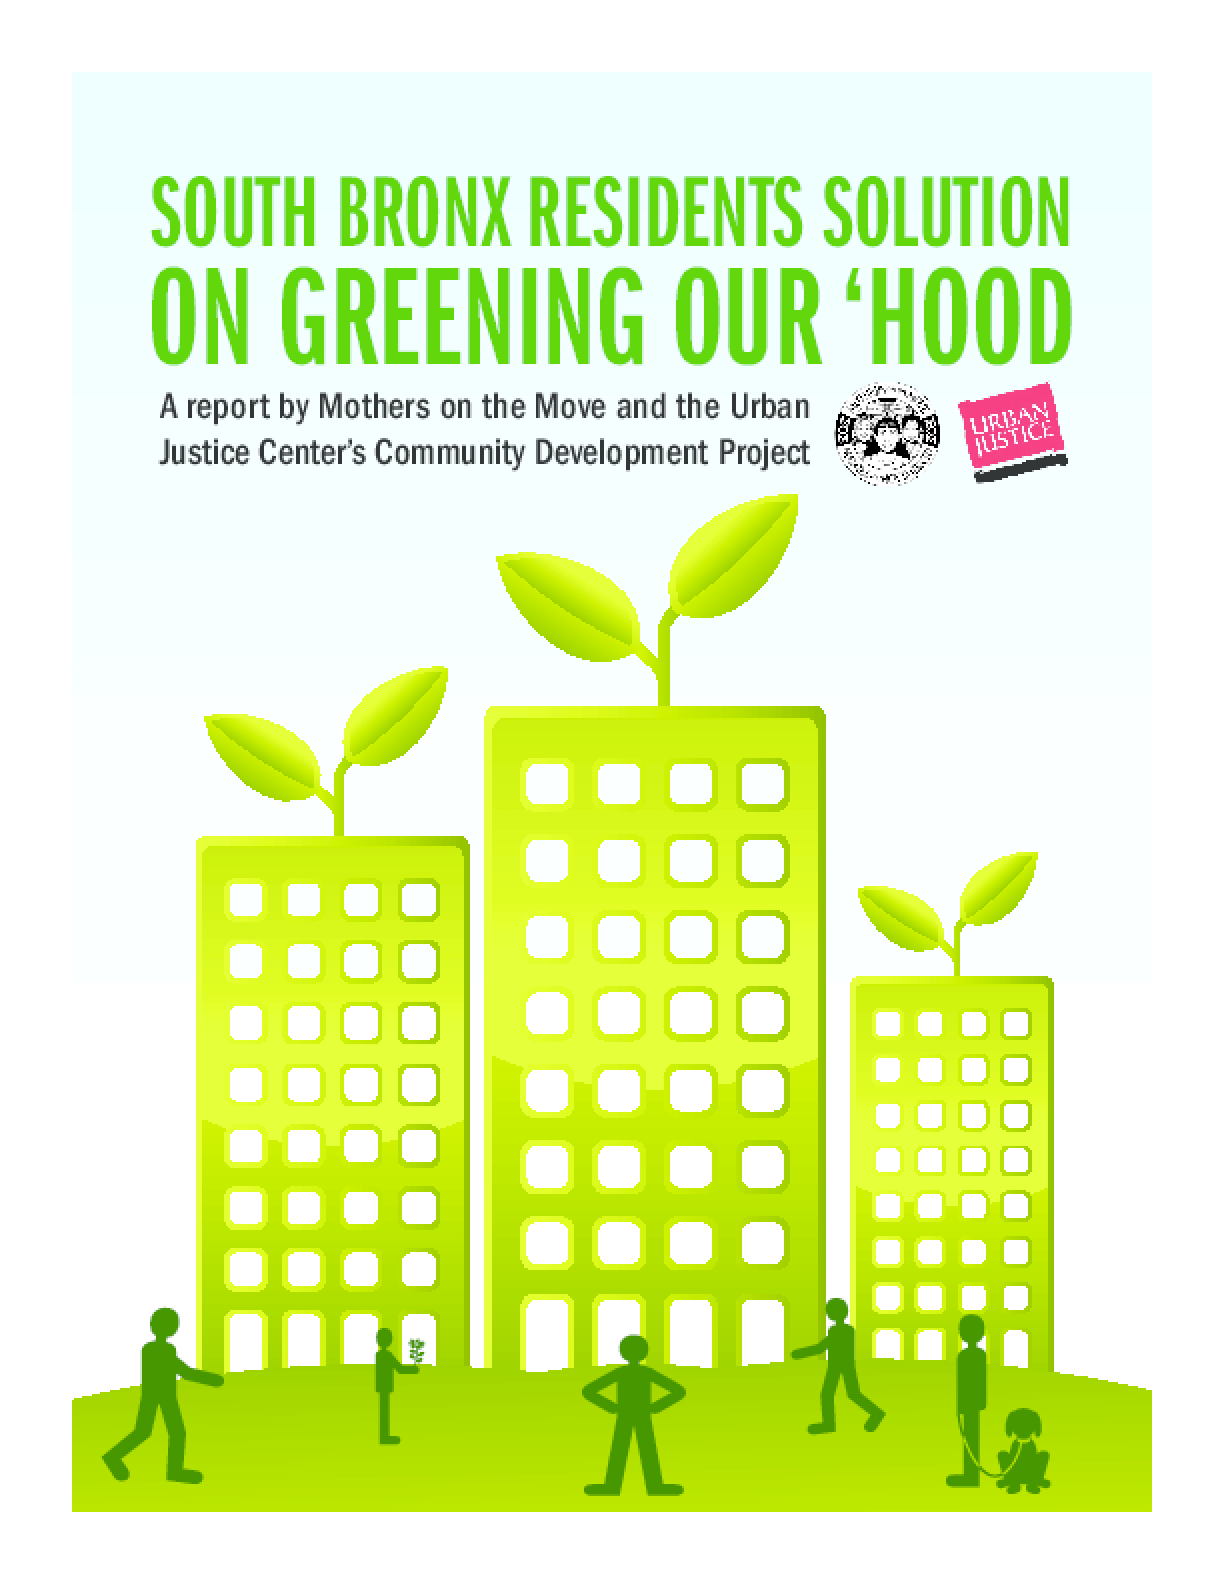 South Bronx Residents Solution on Greening our 'hood